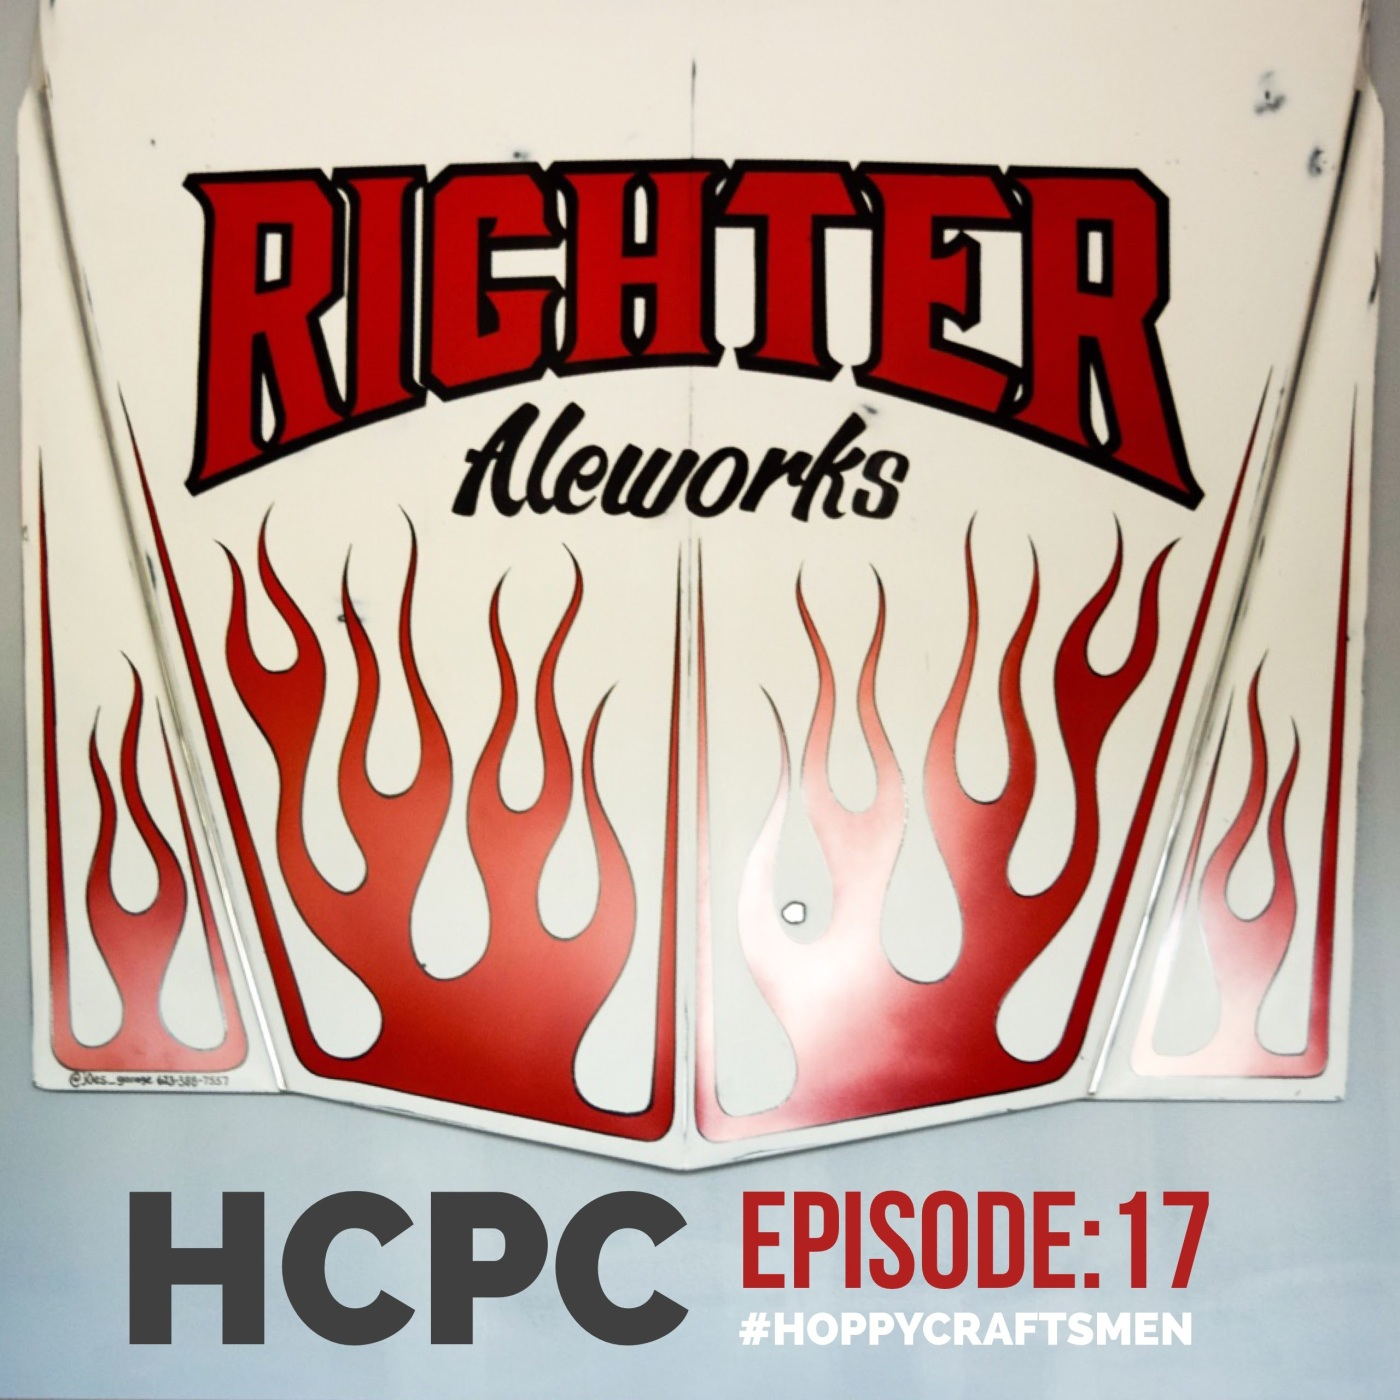 white car hood with red flames that says Richter Aleworks and HCPC Episode 17